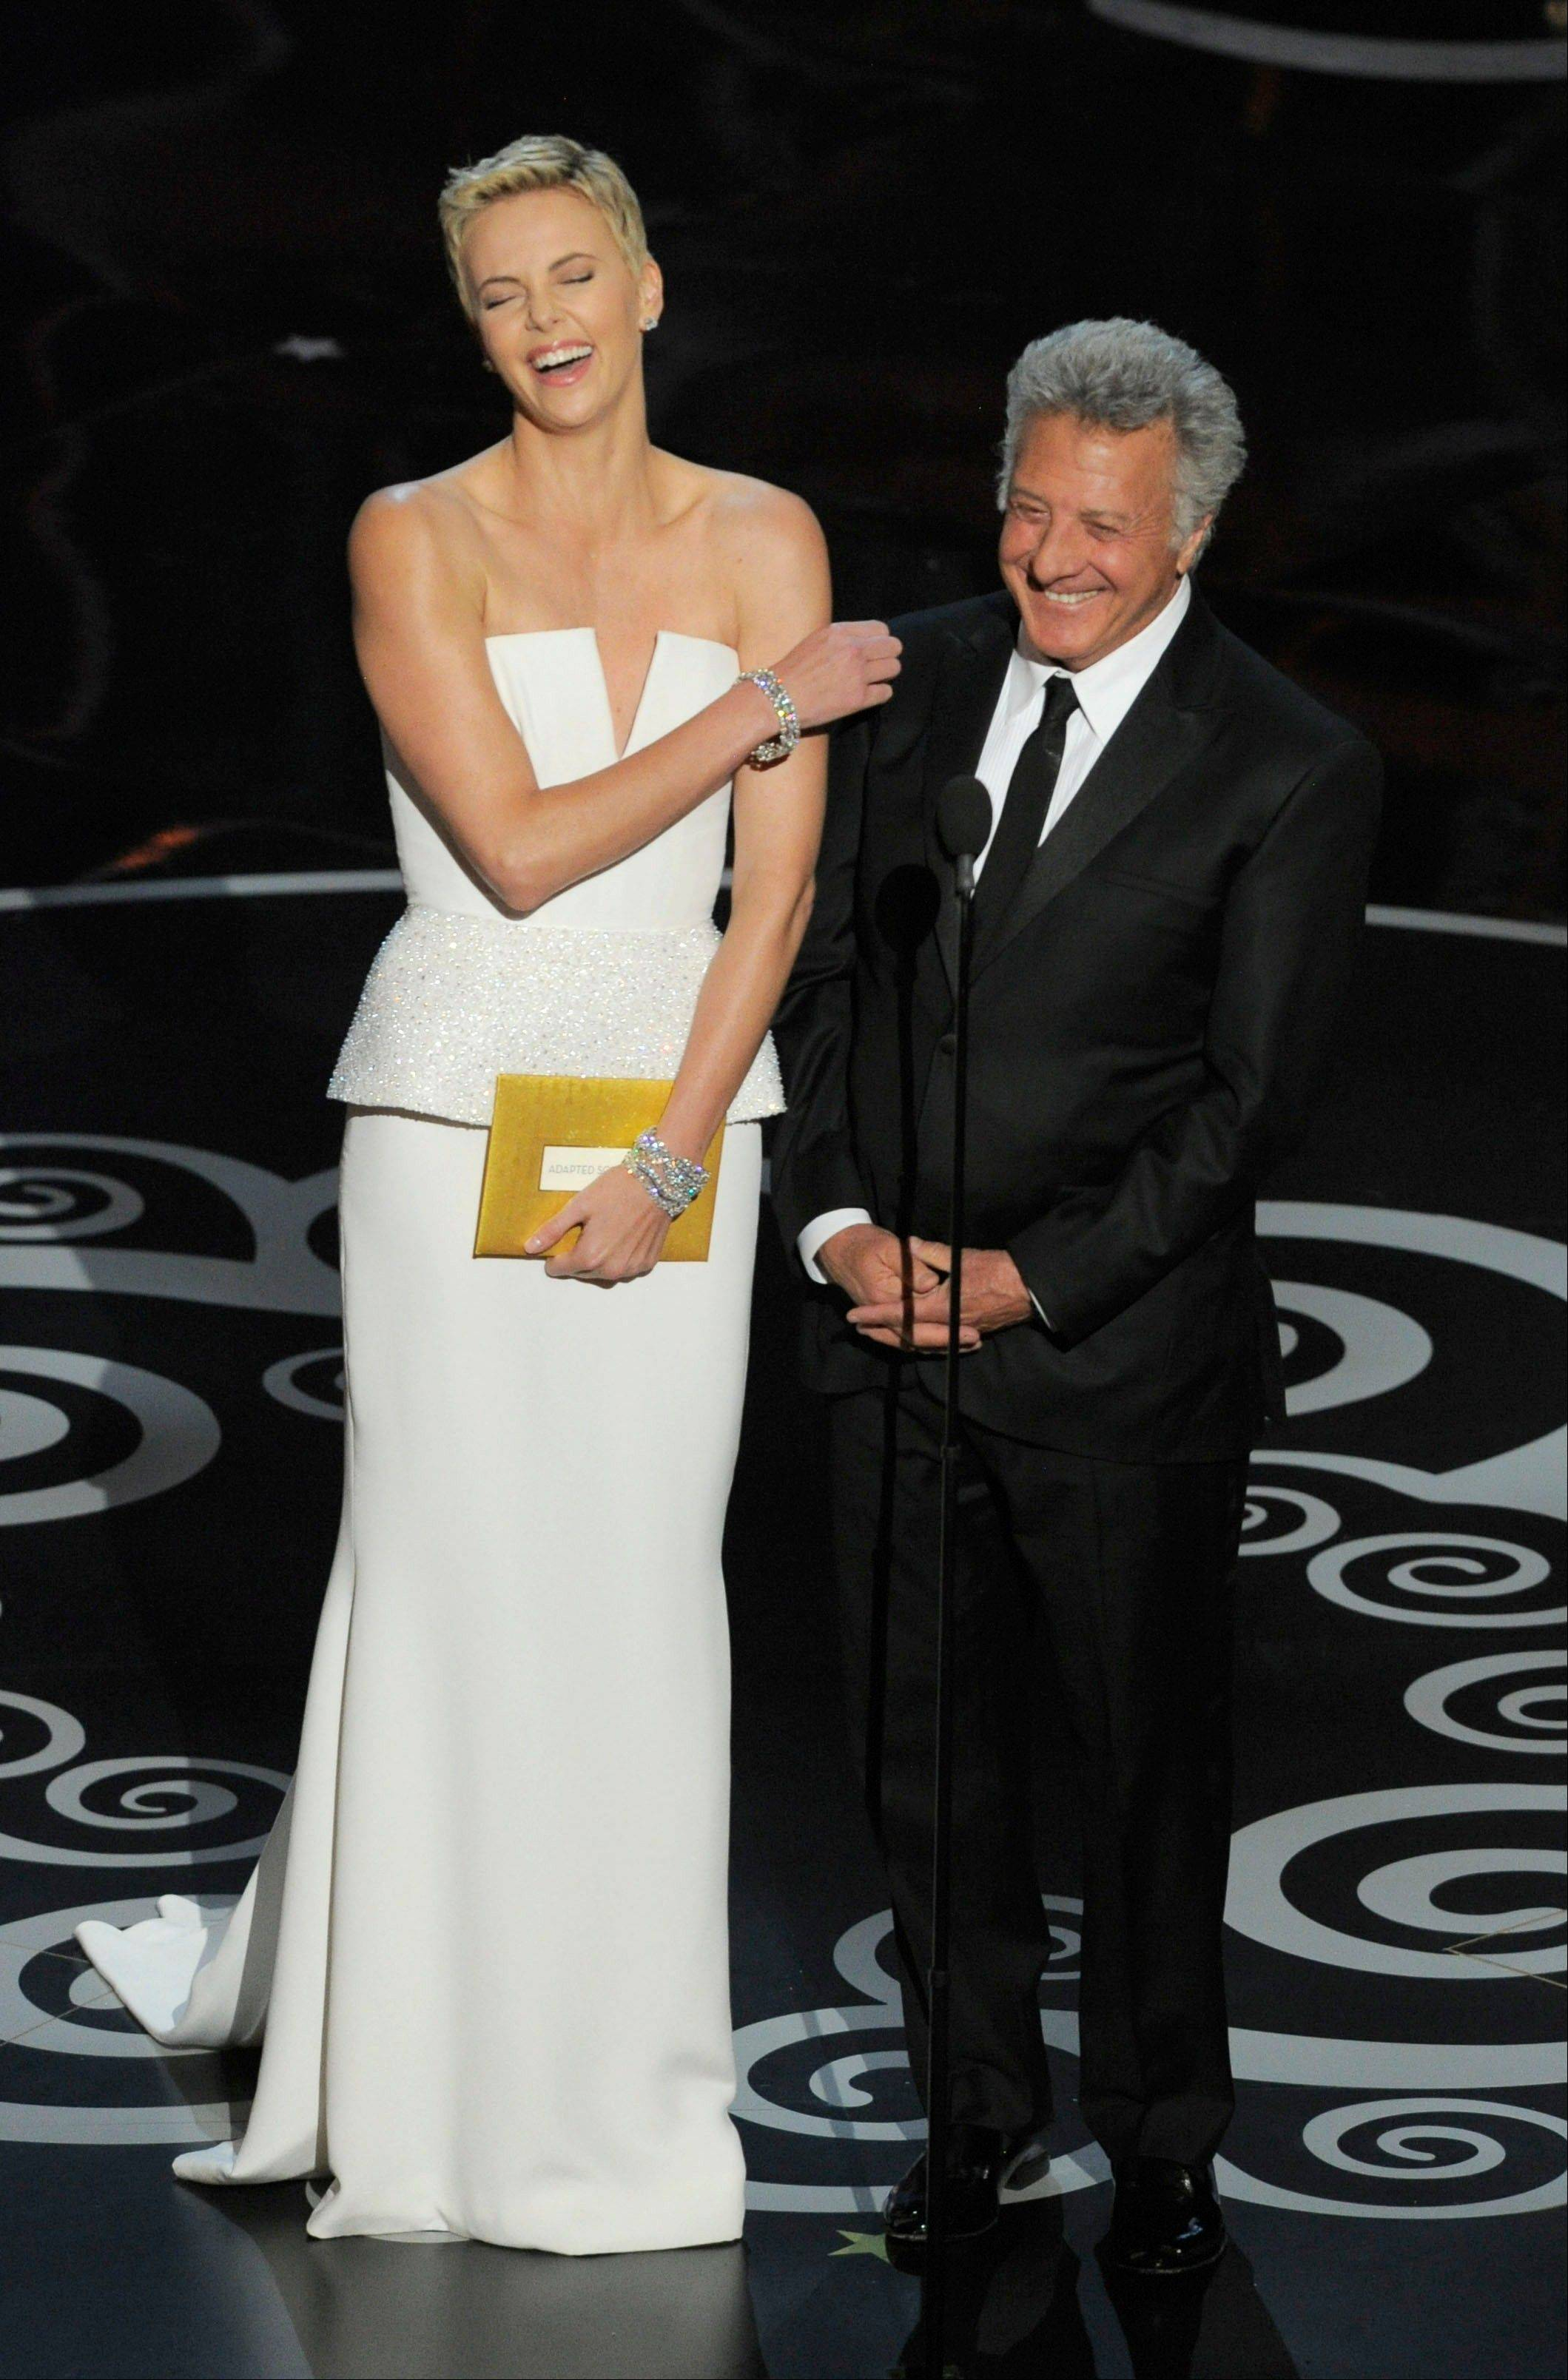 Actors Charlize Theron, left, and Dustin Hoffman present an award during Sunday's Oscars.